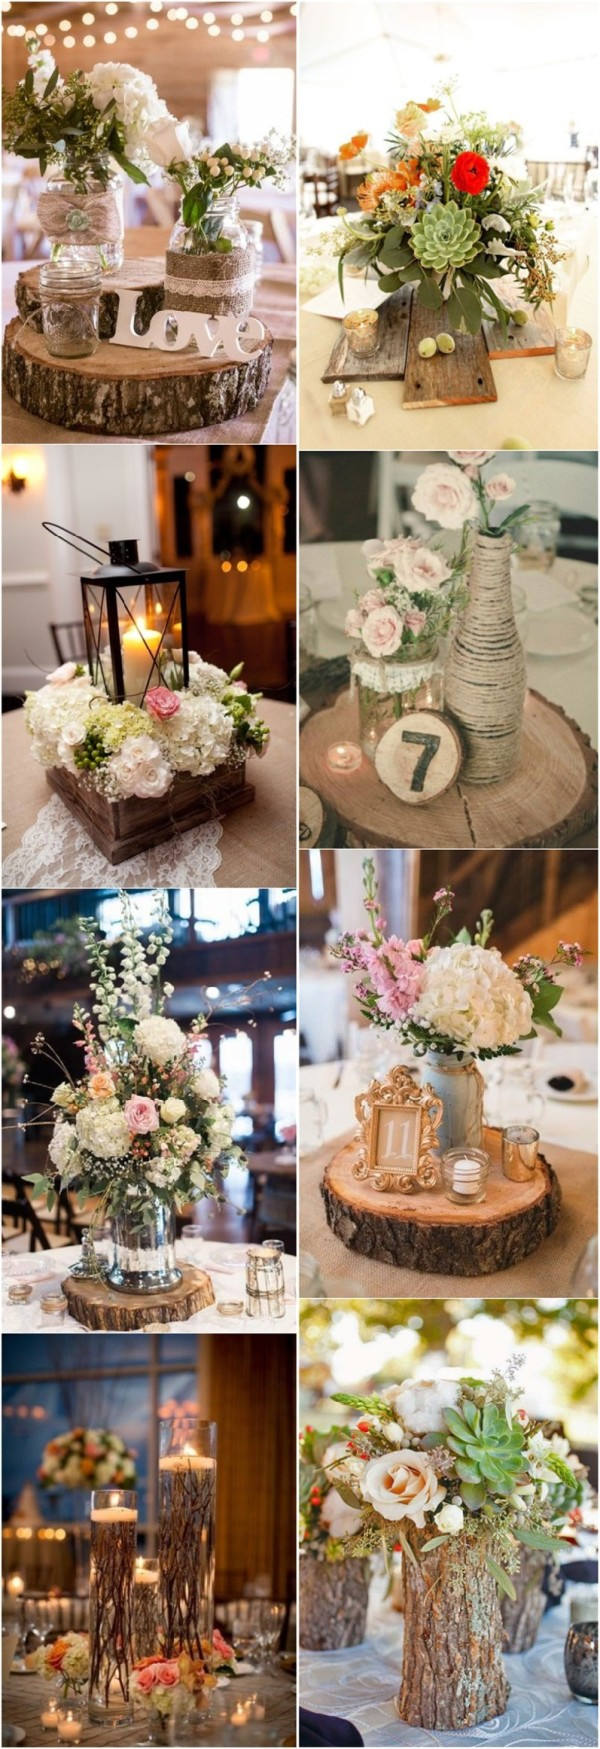 30 rustic wedding theme ideas rustic wedding decorations junglespirit Image collections